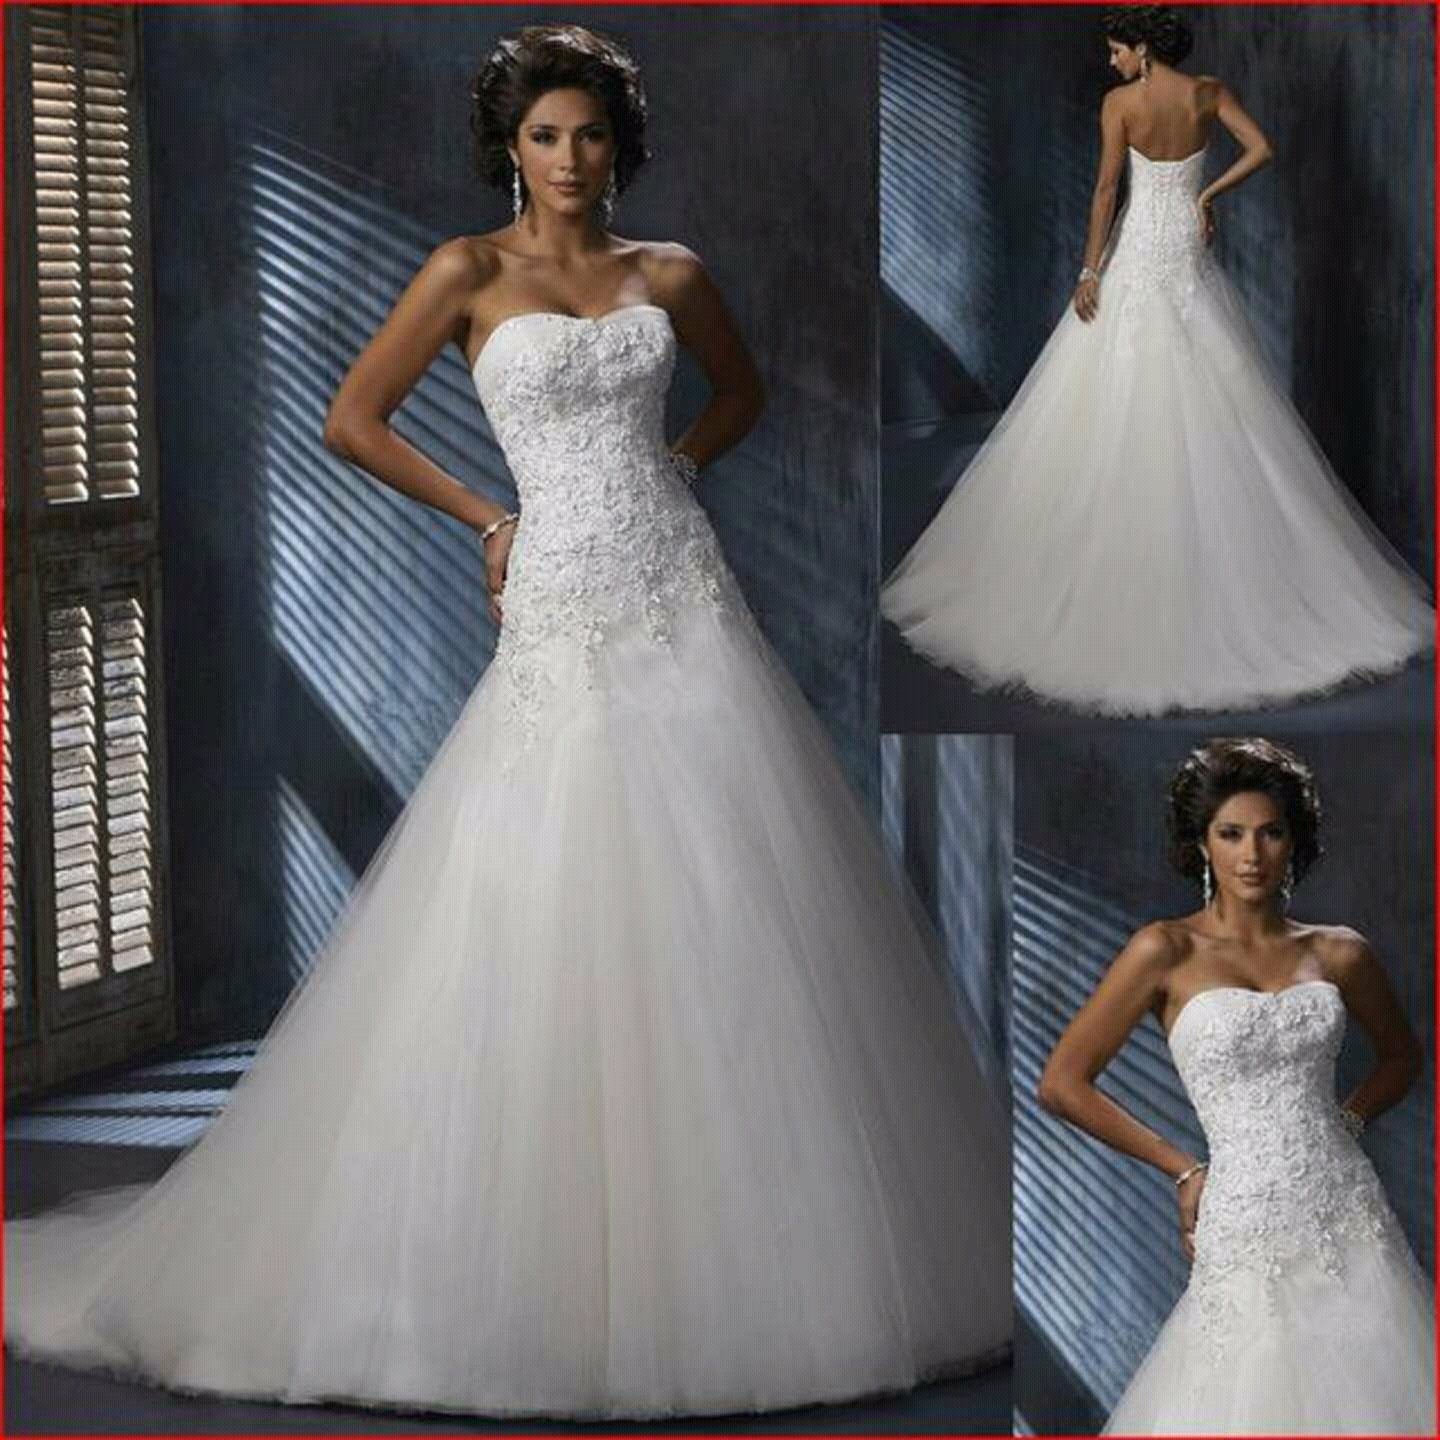 WEDDING DRESSES FOR HIRE